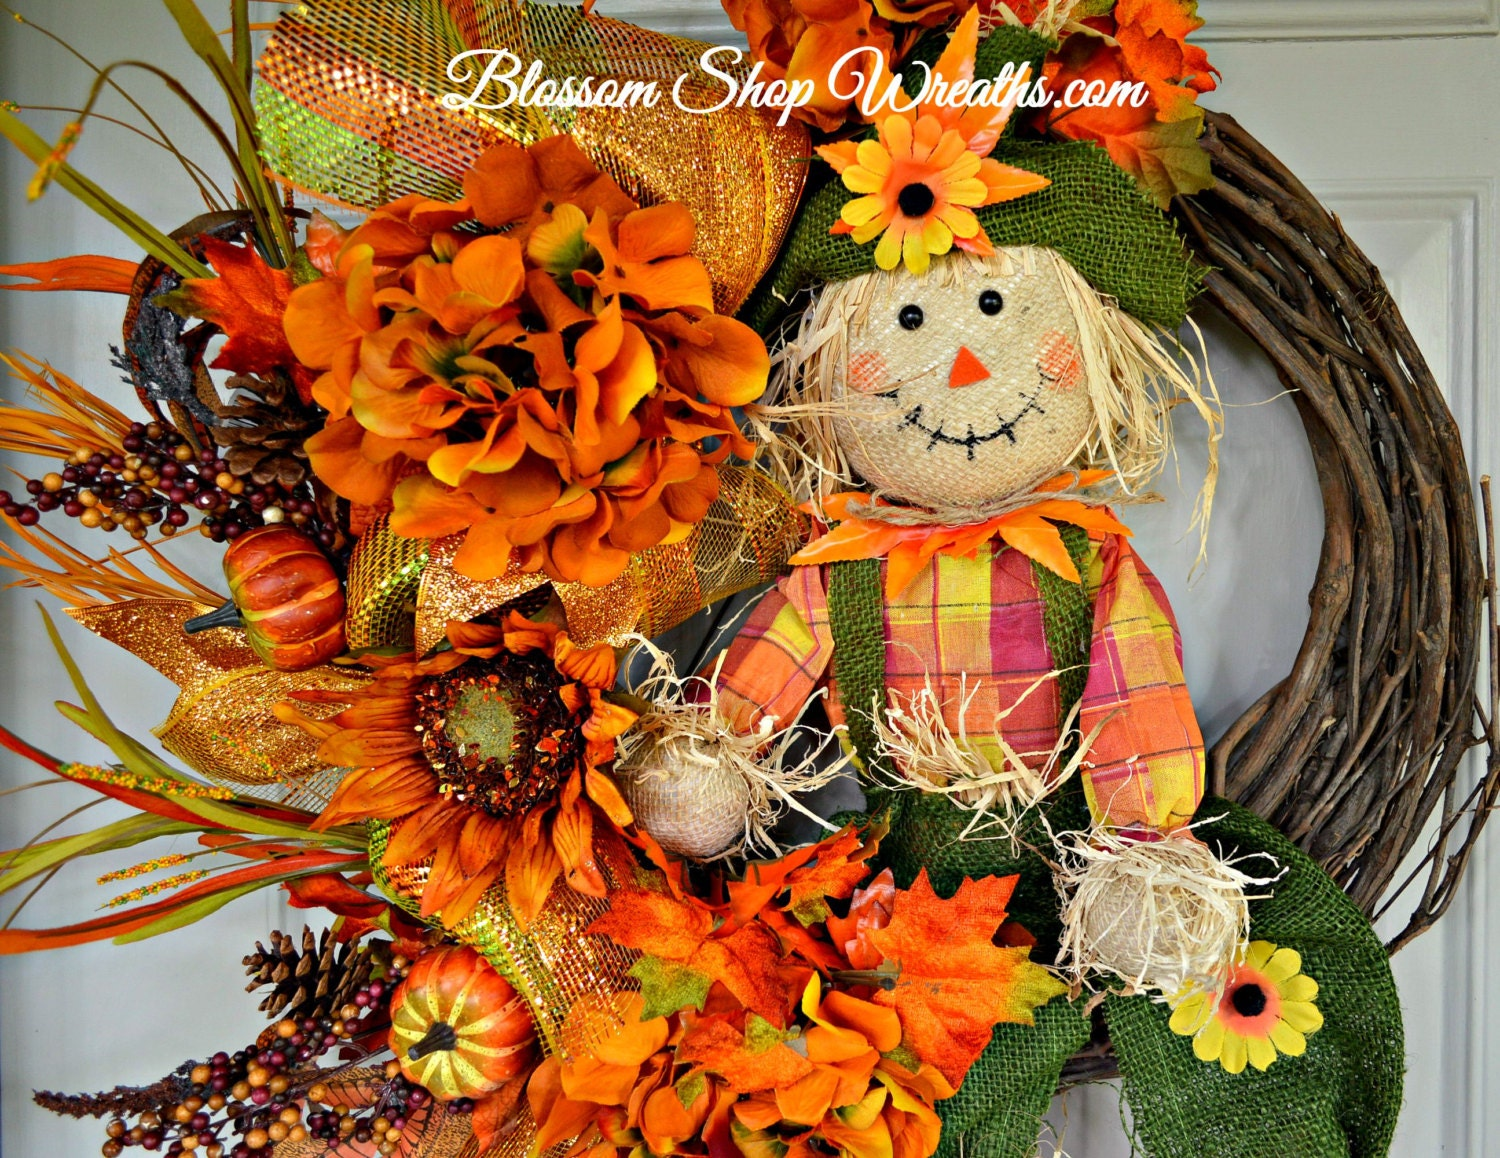 Wreath Sale Fall Wreath Grapevine Wreath By Blossomshopwreaths